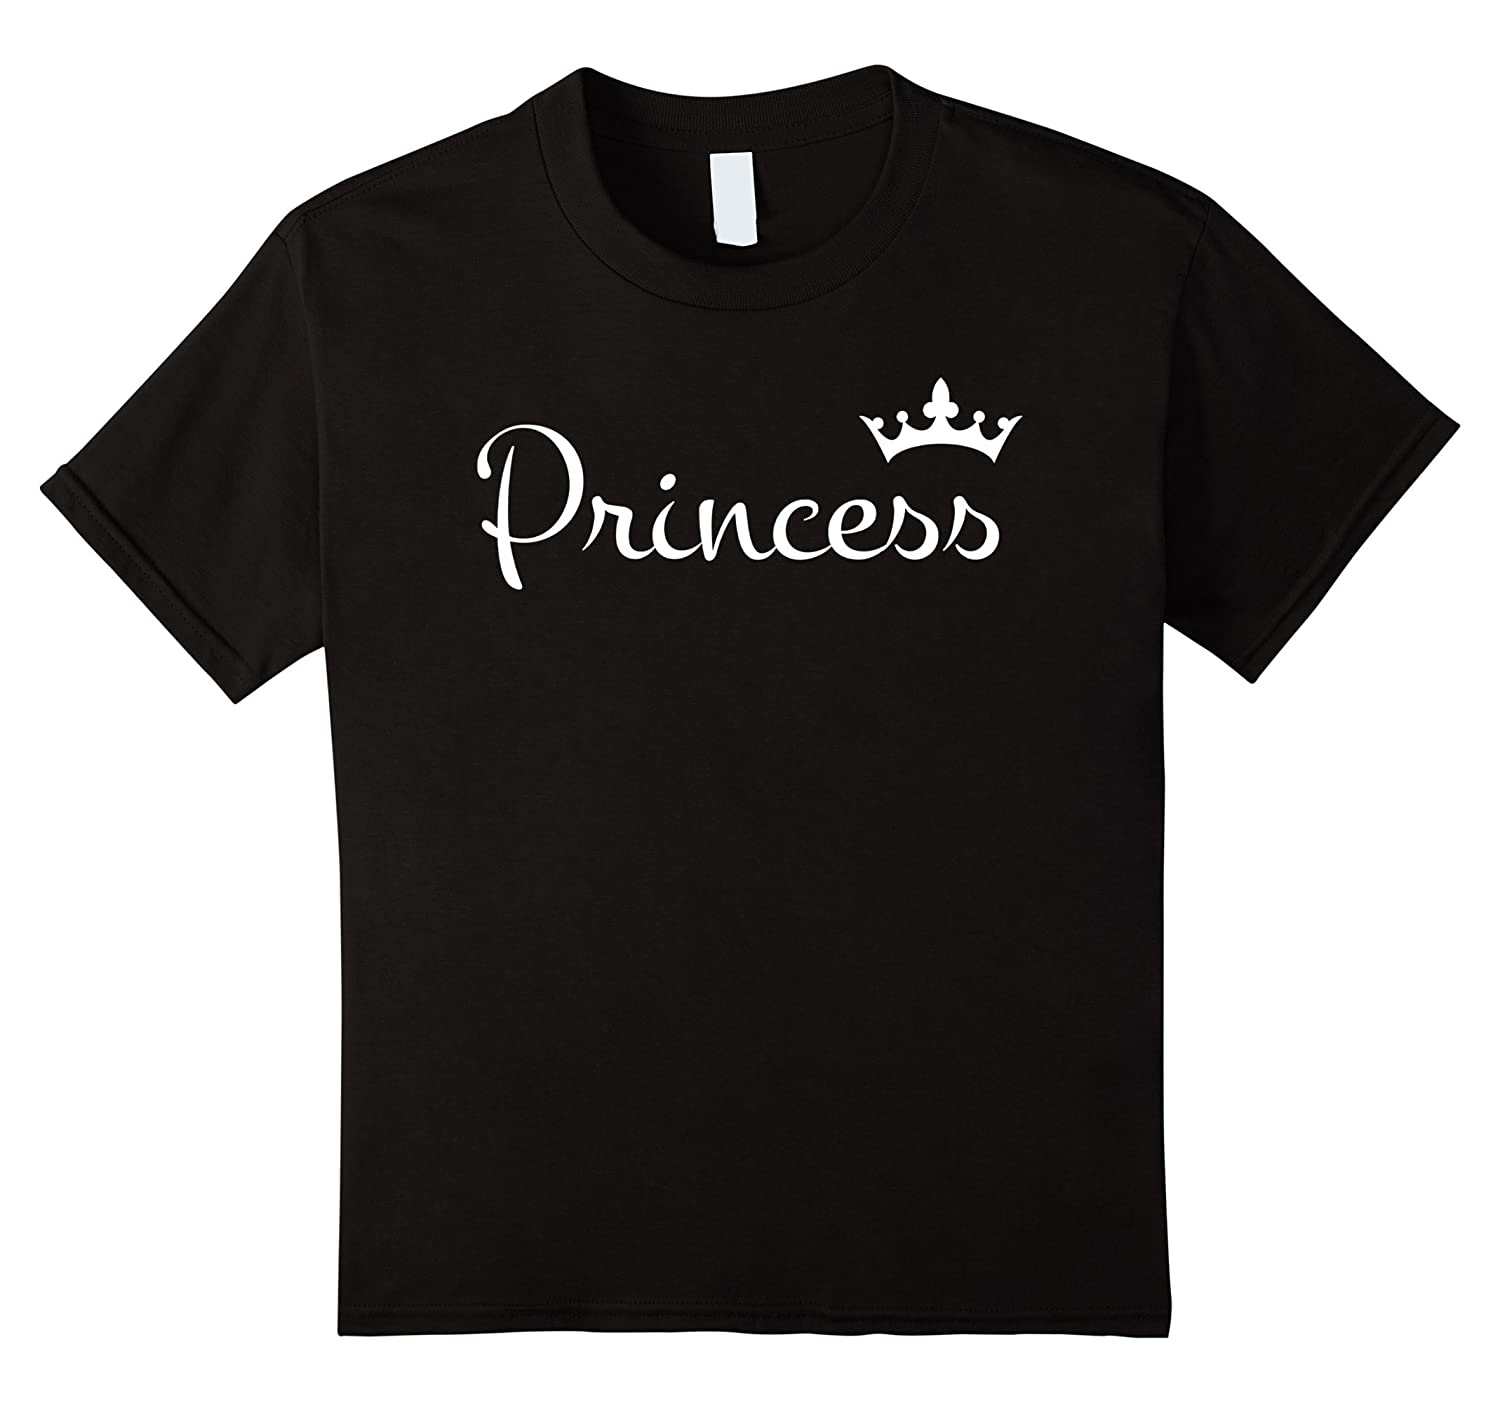 a3786874c5 Imported Machine wash cold with like colors, dry low heat. MATCHING couple  design is available if you click the brand on top (Prince and Princess  Shirts ...